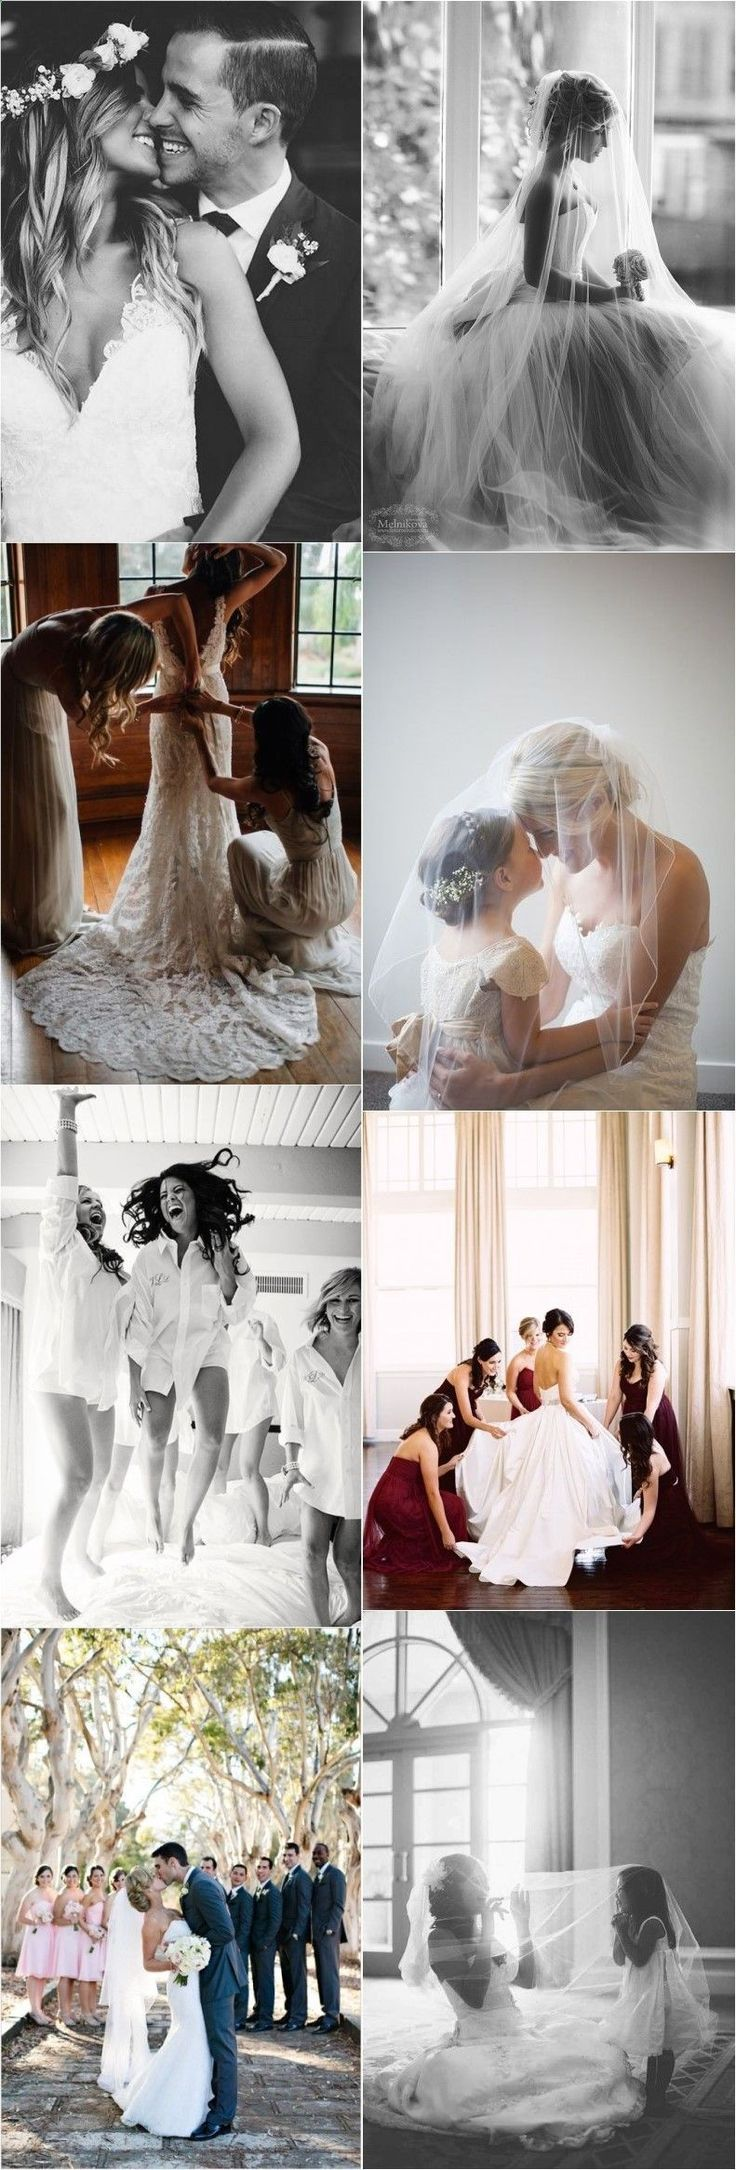 36 Family Wedding Photo Ideas You Will Enjoy